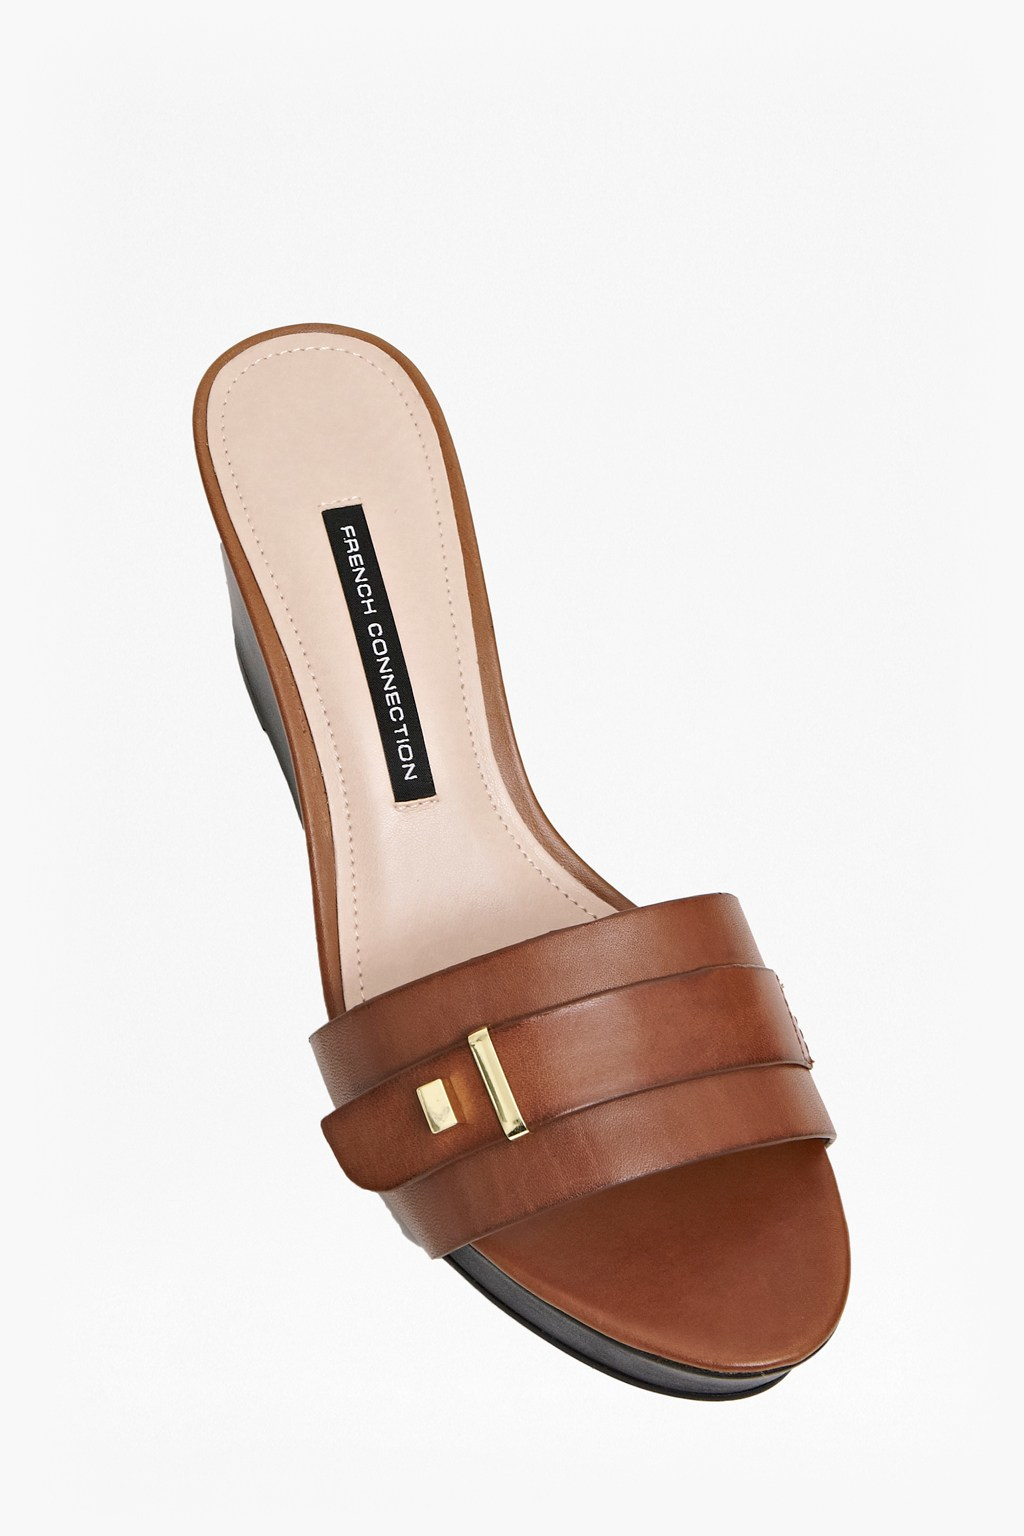 1df09f6c777f Lyst - French Connection Sadelle Leather Wedge Sandals in Brown